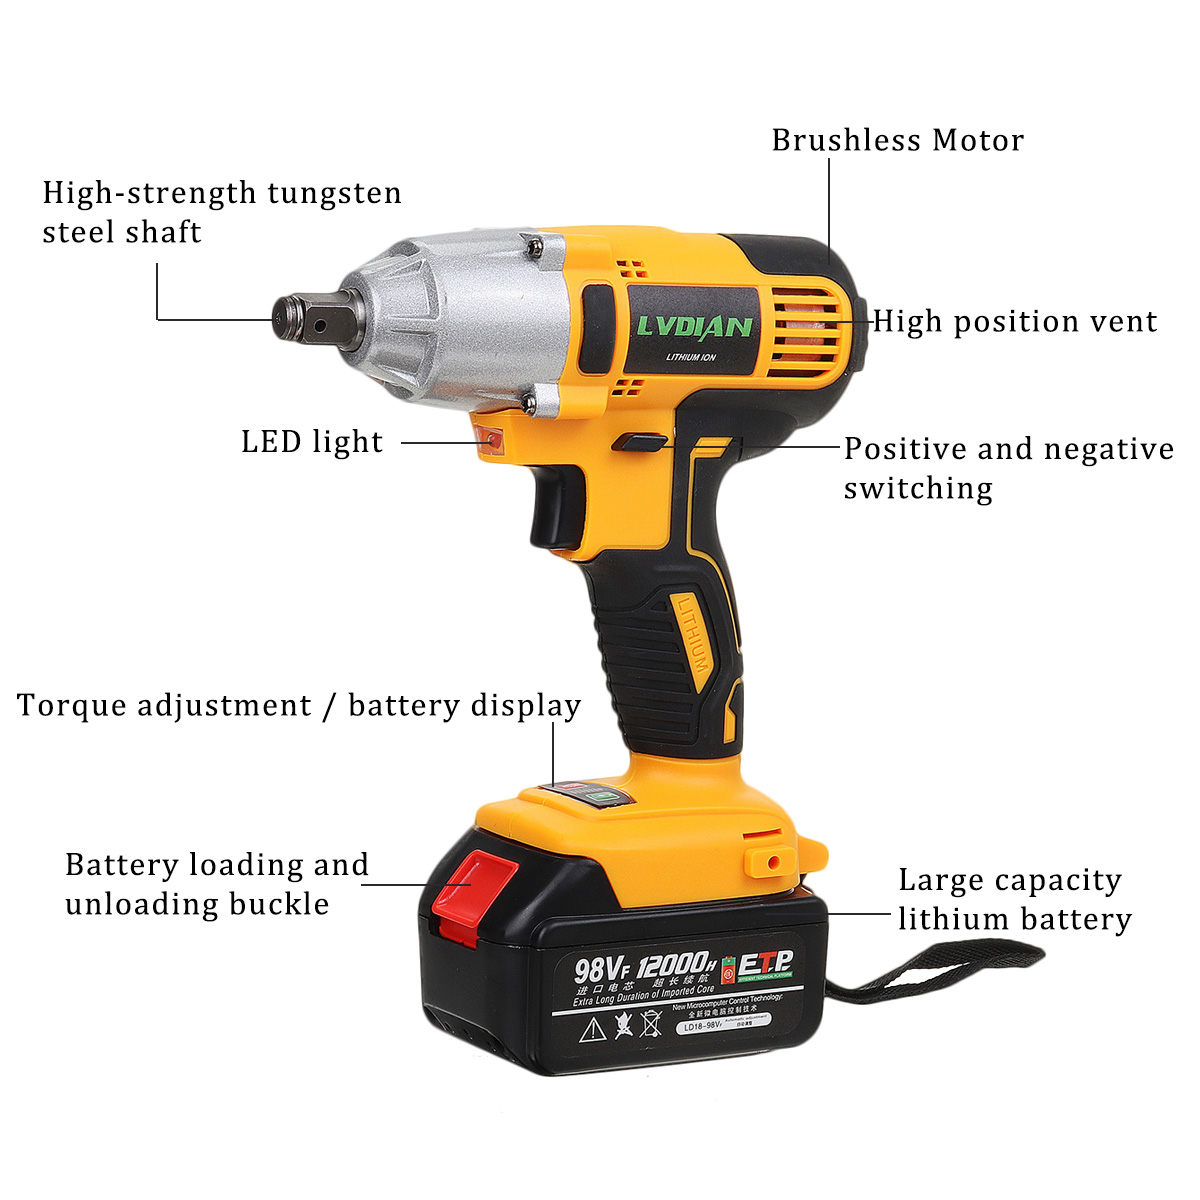 DRILLPRO Electric Wrench 98VF 1 2inch Brushless Cordless Electric Impact Wrench Drill with 12000mah Battery LED lights Power Tools